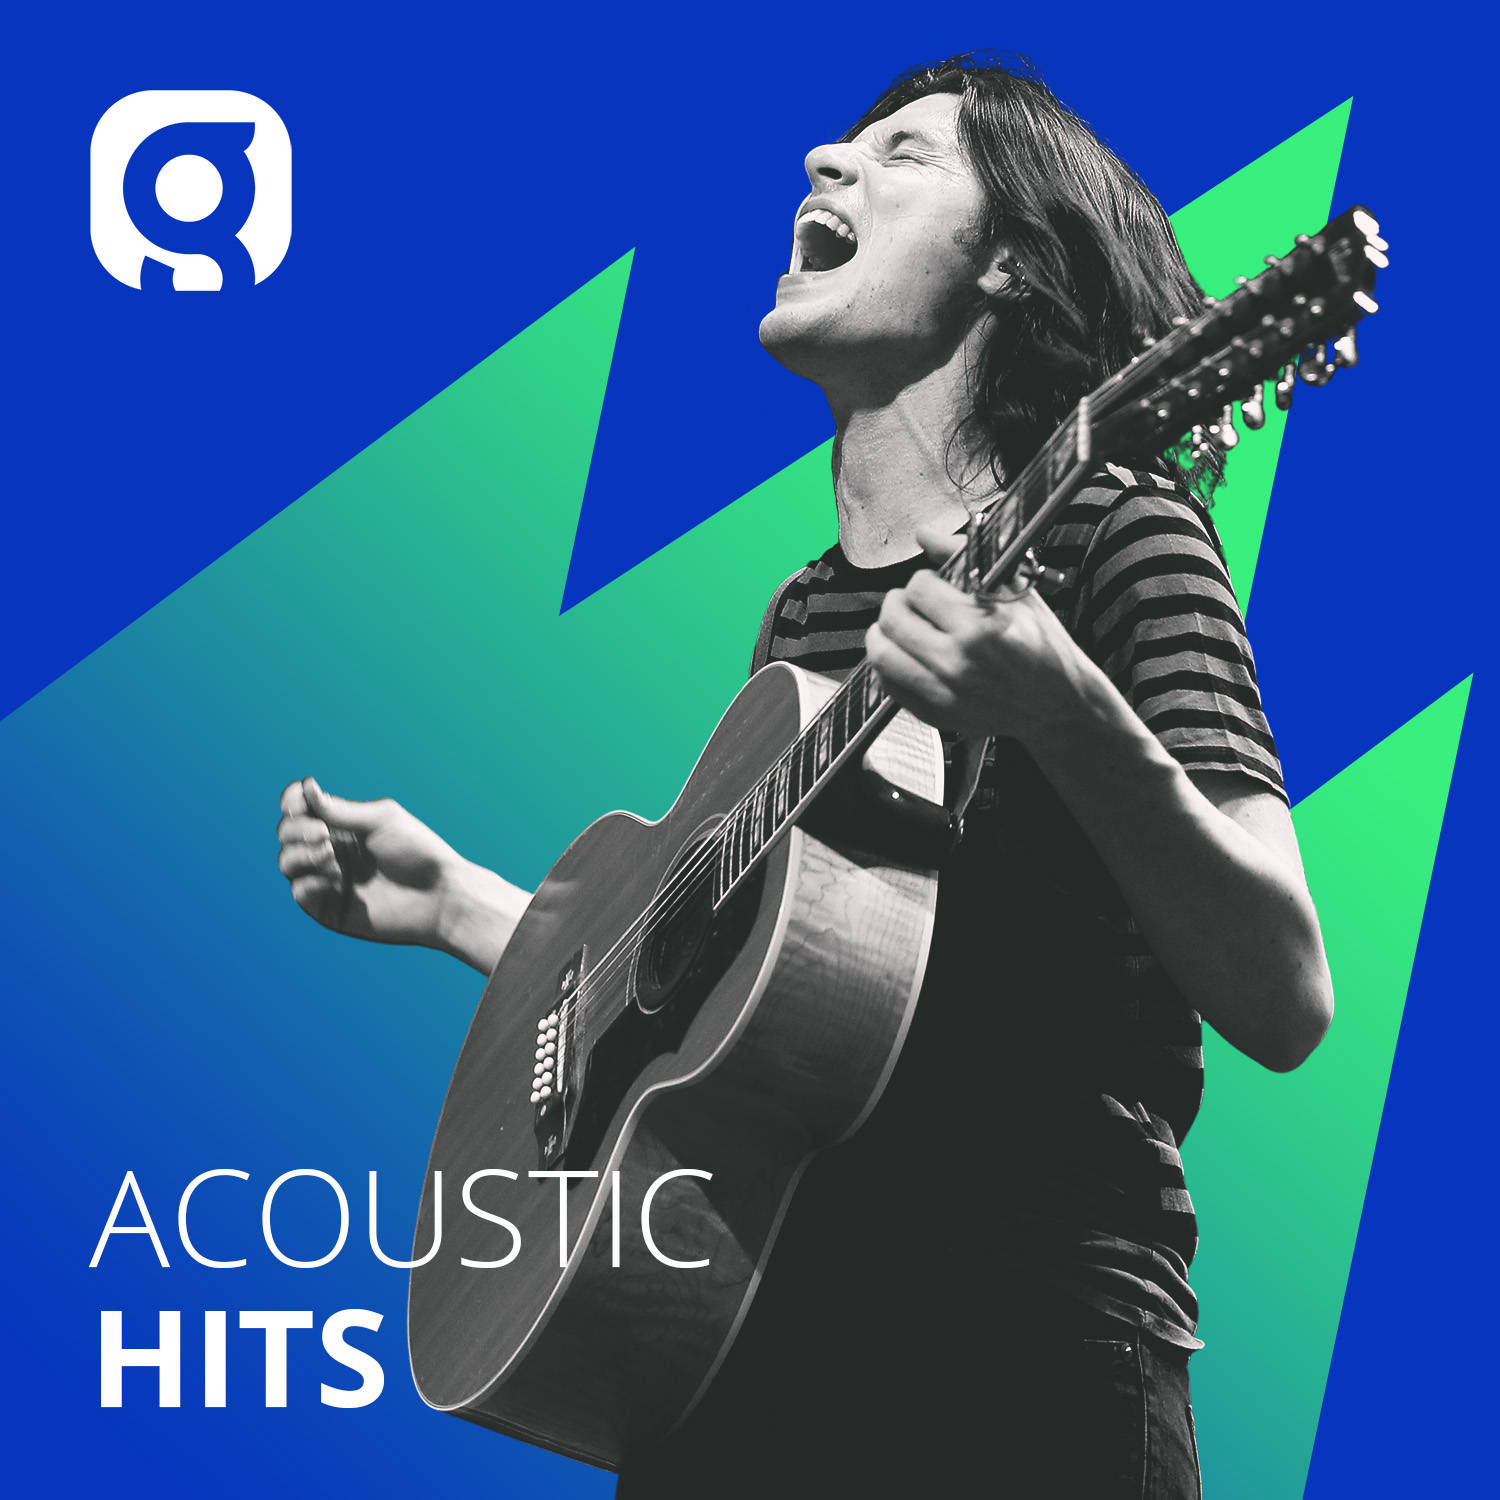 Acoustic Hits image